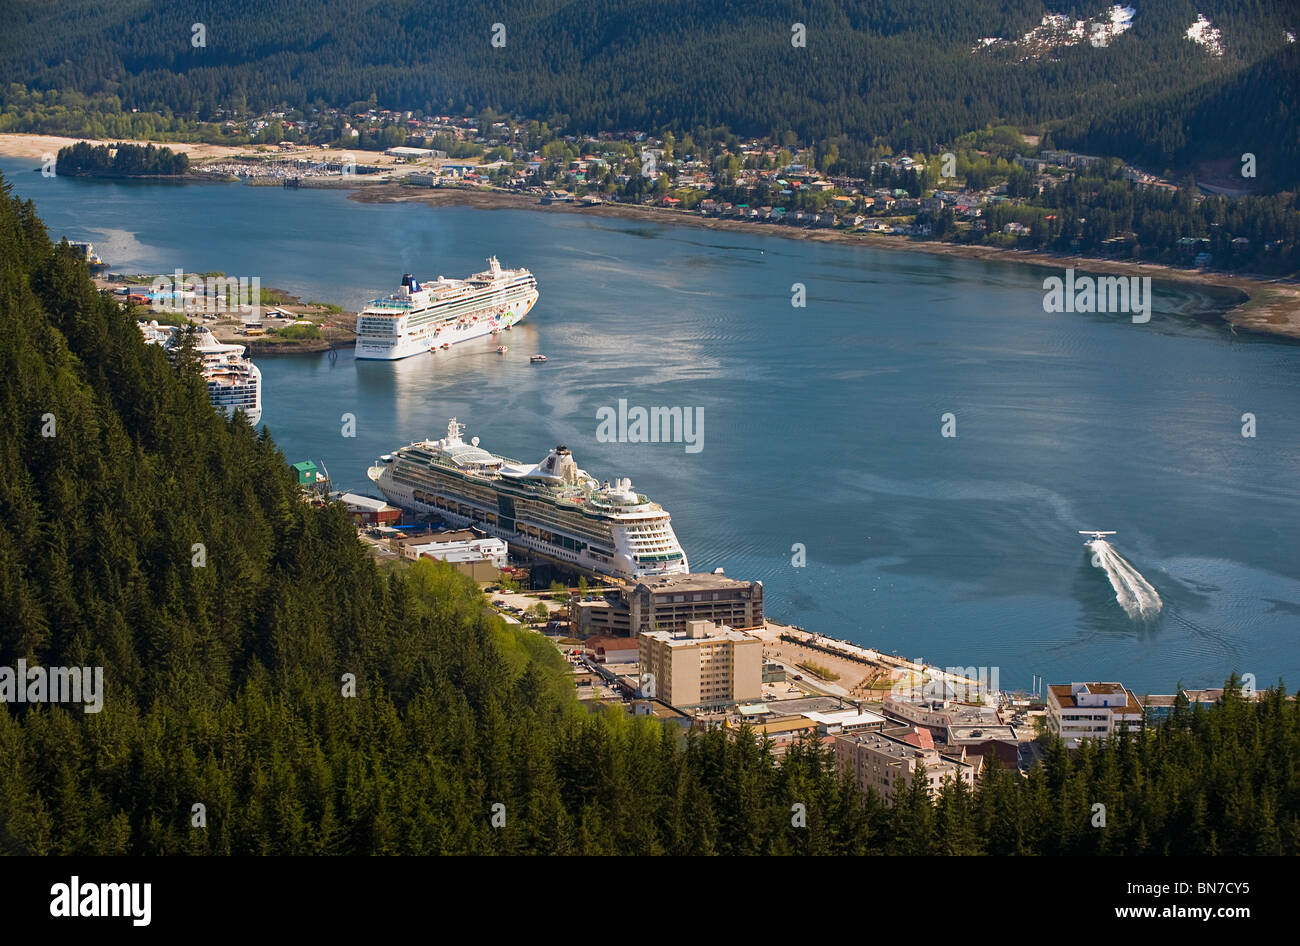 A floatplane takes off in Gastineau Channel with a view of three cruise ships docked in downtown Juneau, Alaska - Stock Image